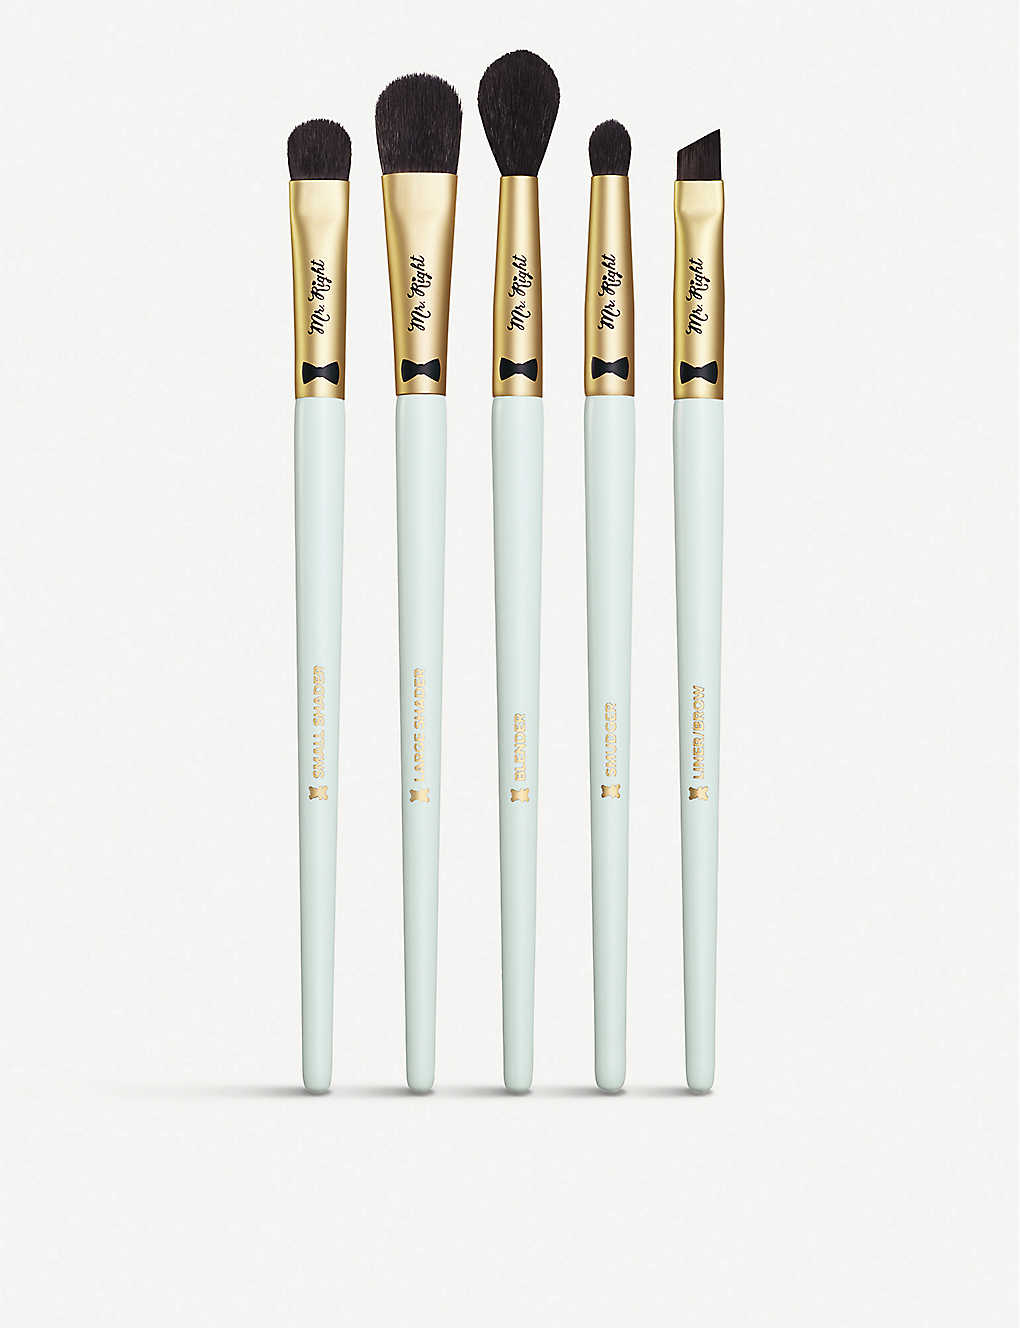 TOO FACED: Mr. Right 5-Piece Brush Set